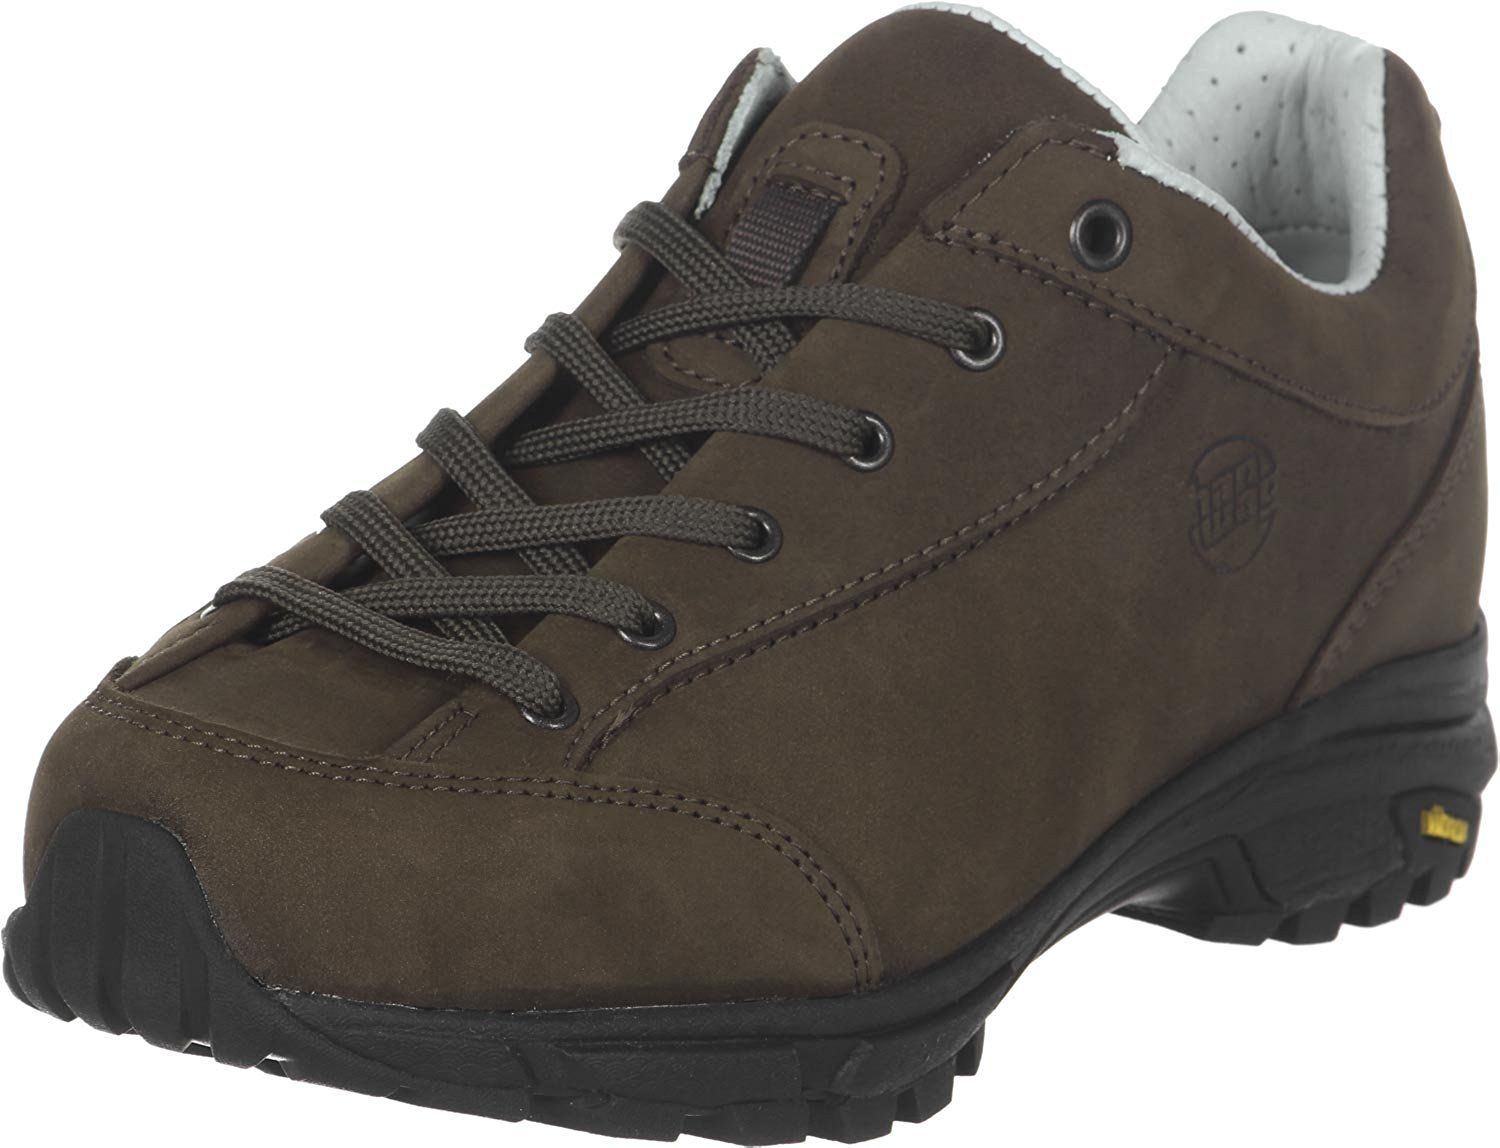 36de47d7611 Hanwag Valungo Bunion Boot - Women's >>> Read more reviews of the ...